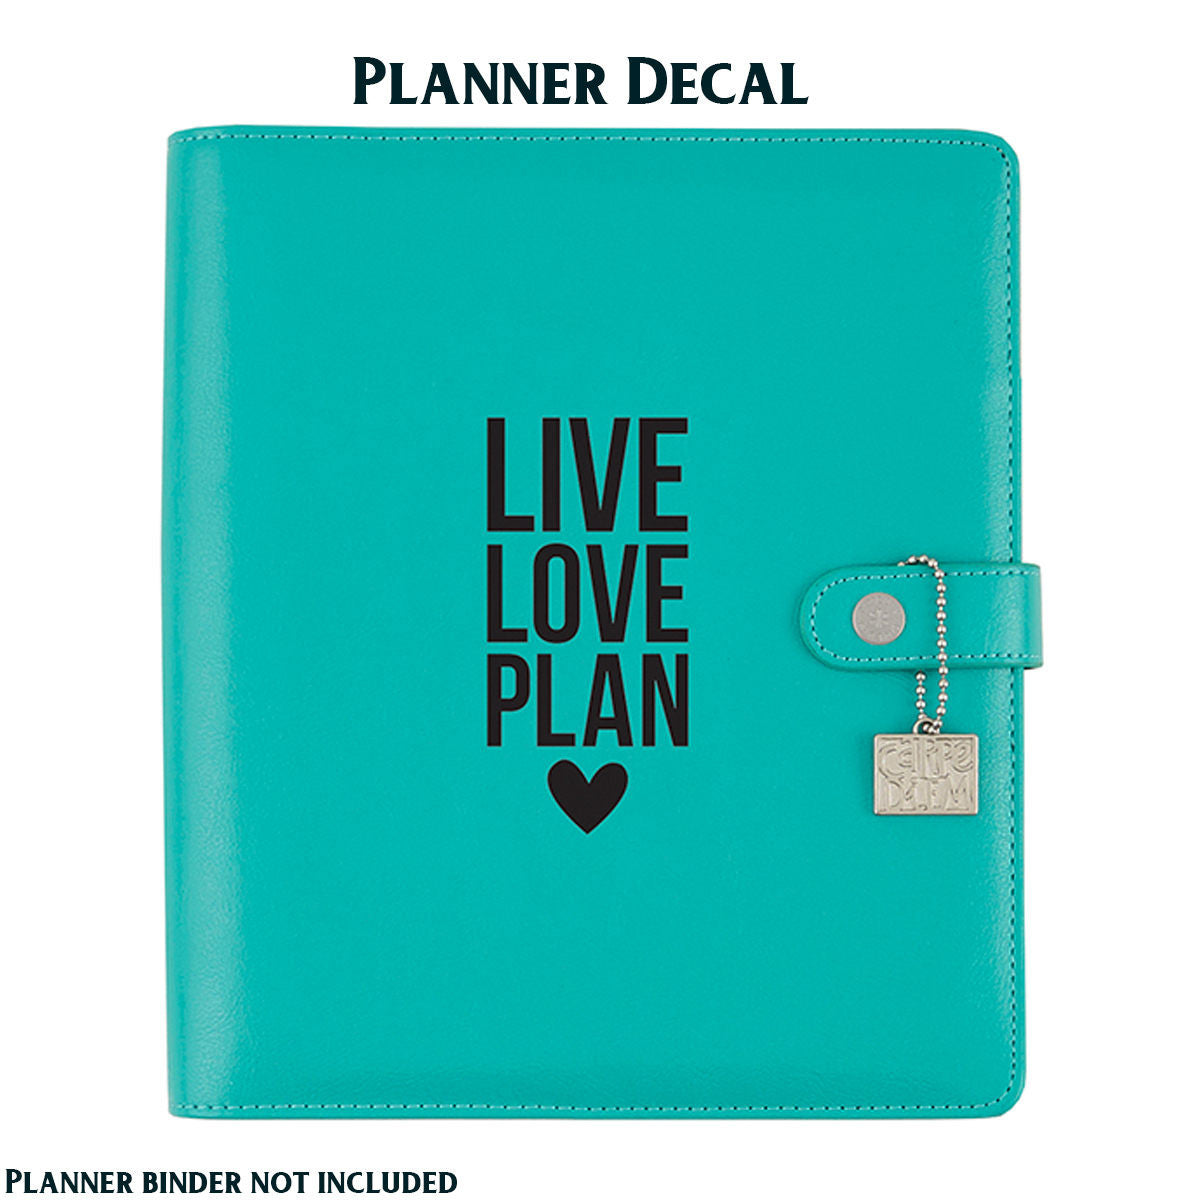 LIVE LOVE PLAN Carpe Diem Vinyl Planner Decal